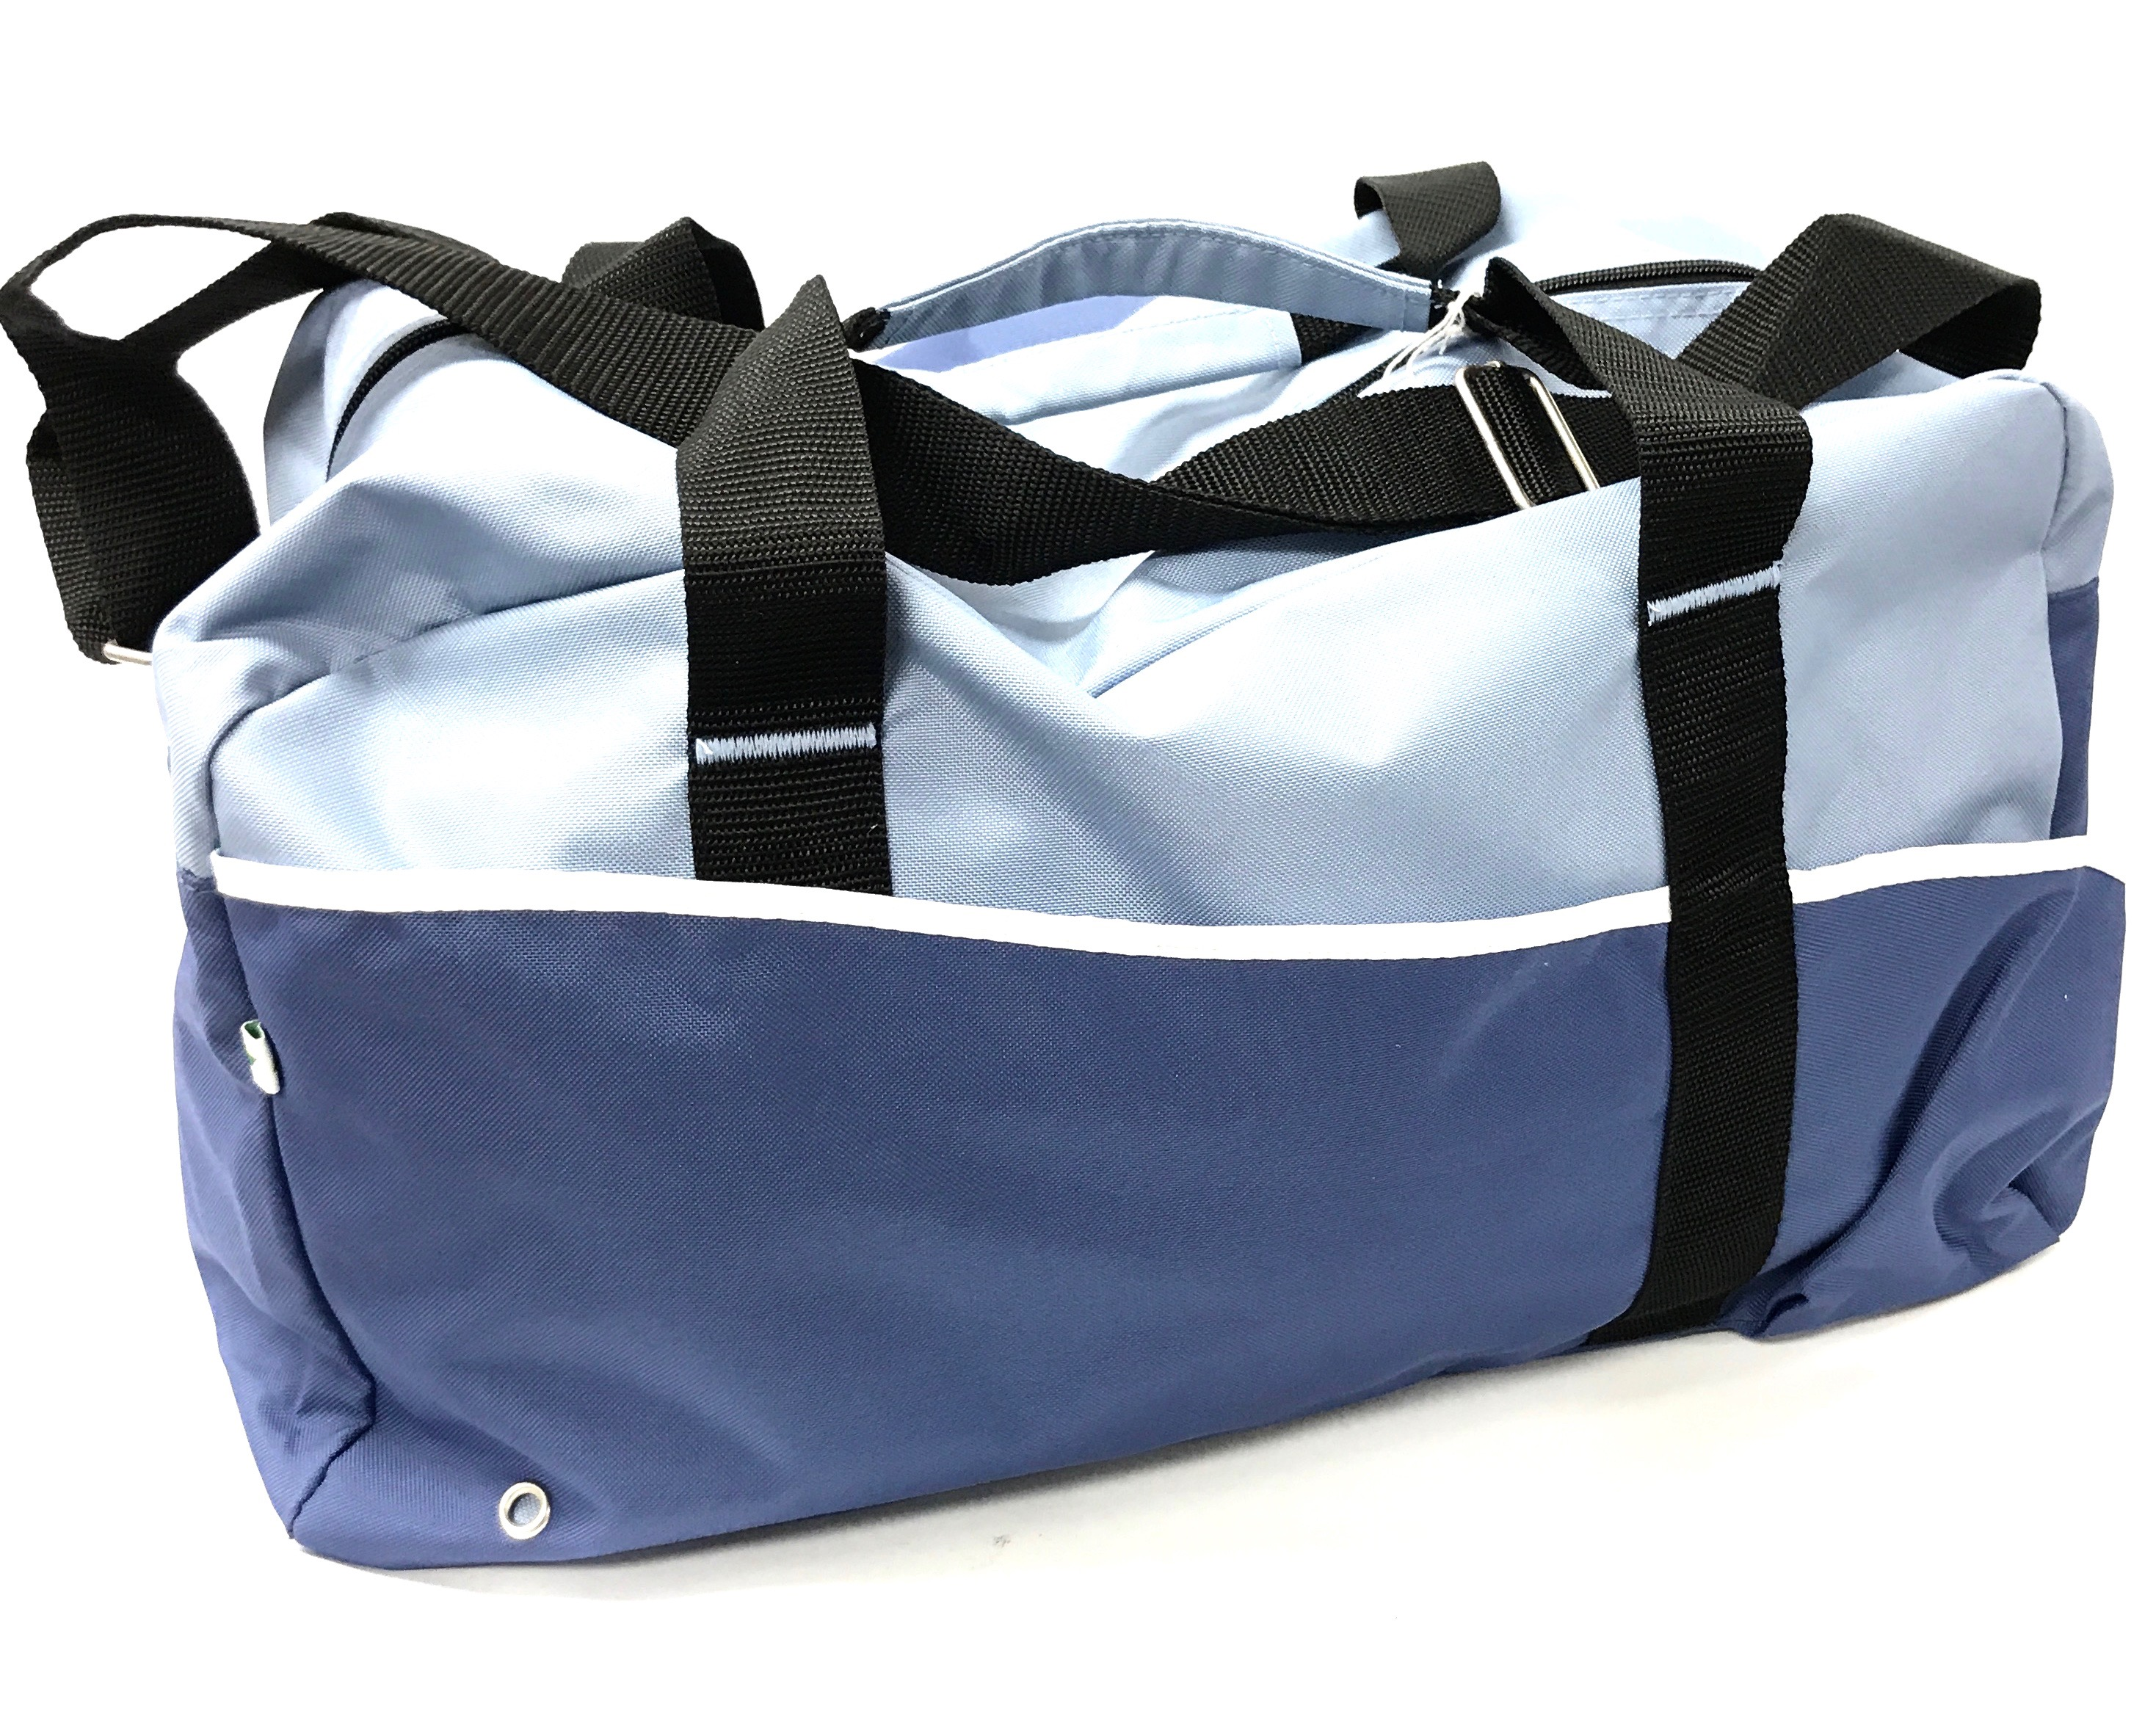 (117535) Center Court Duffle - Rain